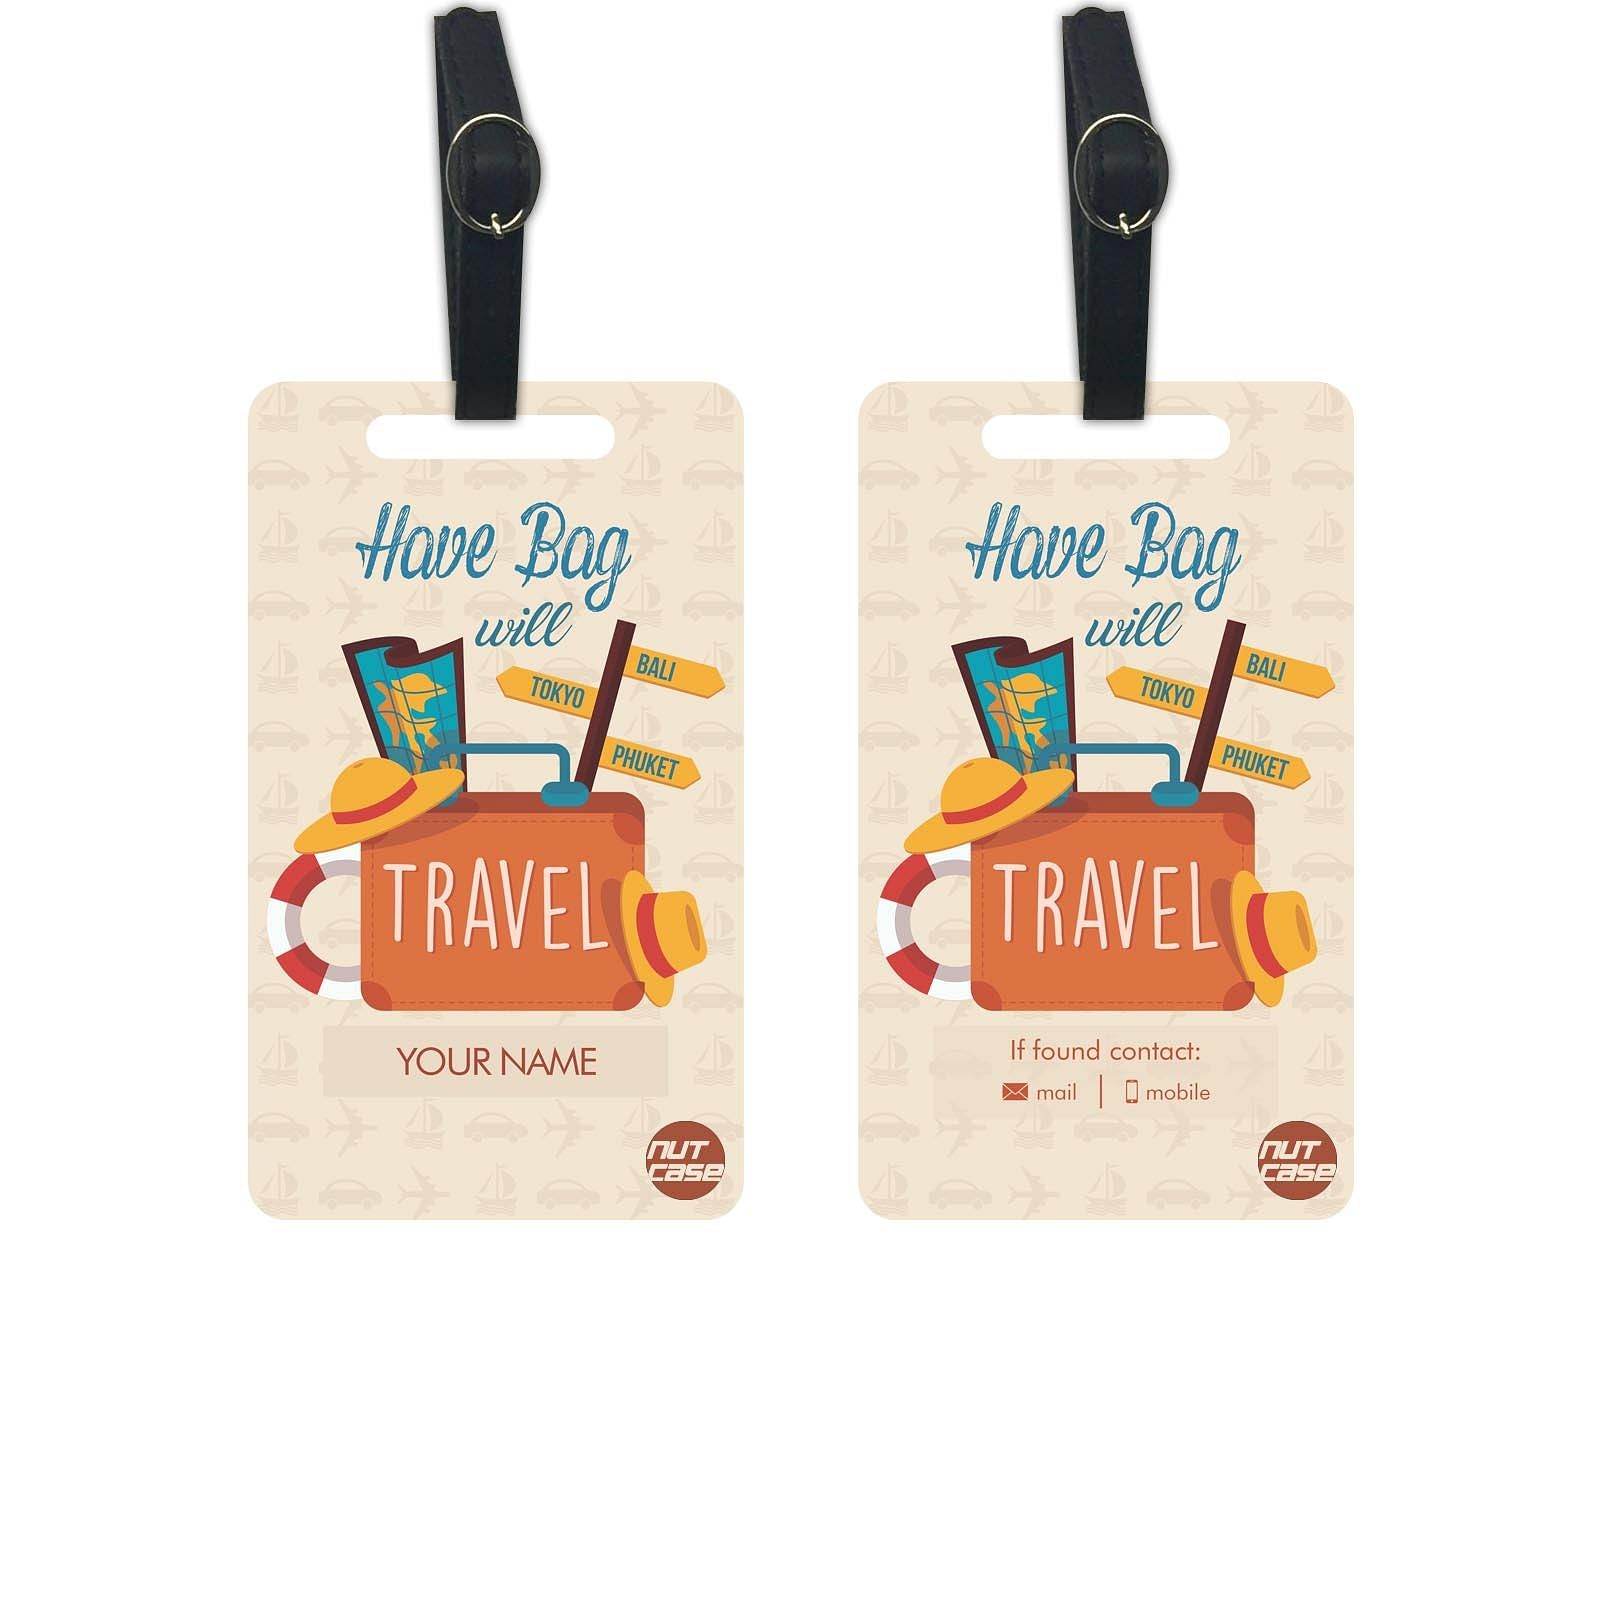 Personalised Travel Luggage Tags - Add your Name - Set of 2